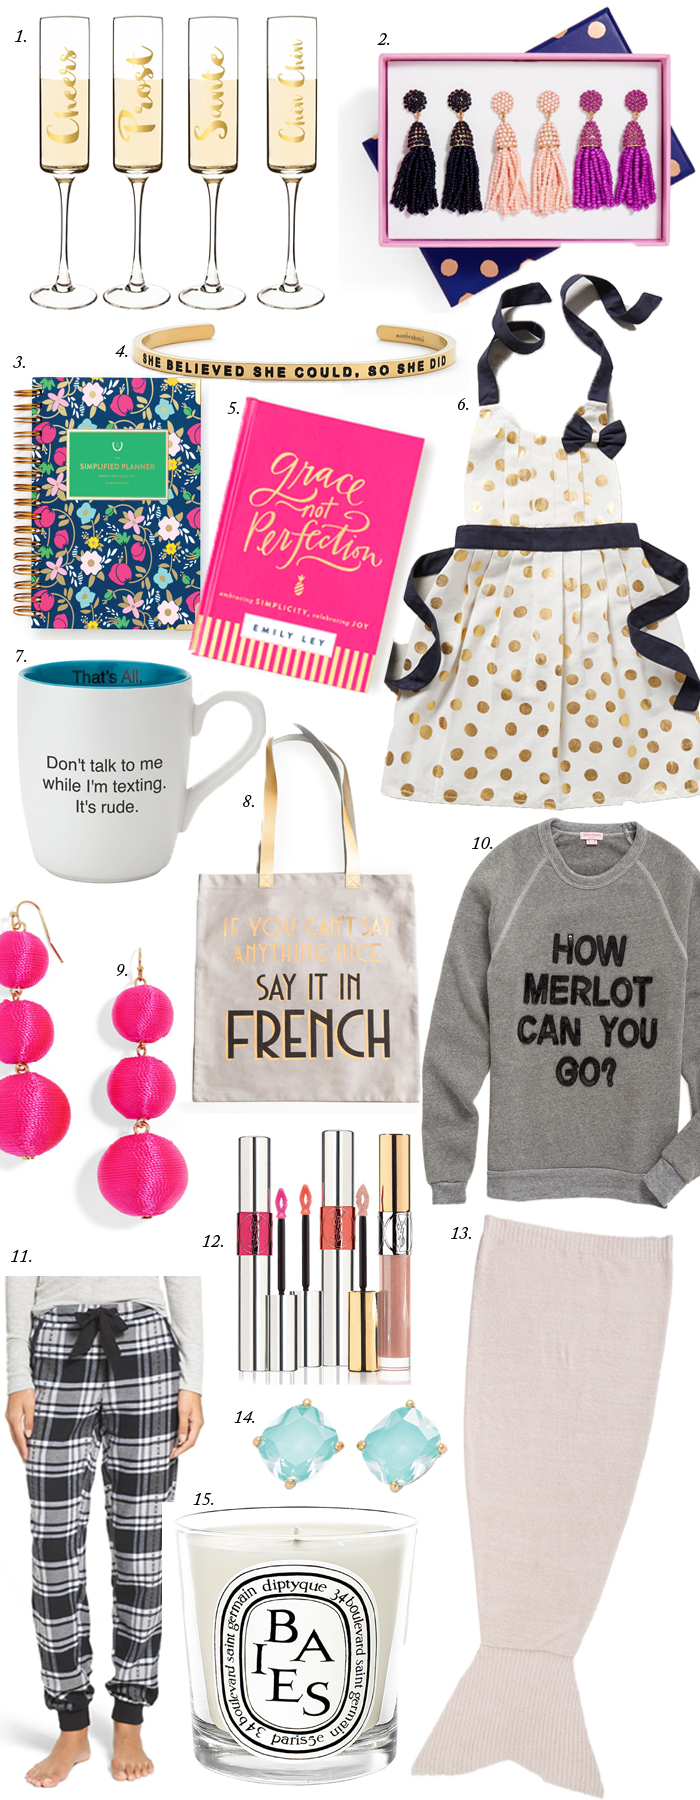 A Holiday Gift Guide for all of your girlfriends who are on your Christmas list